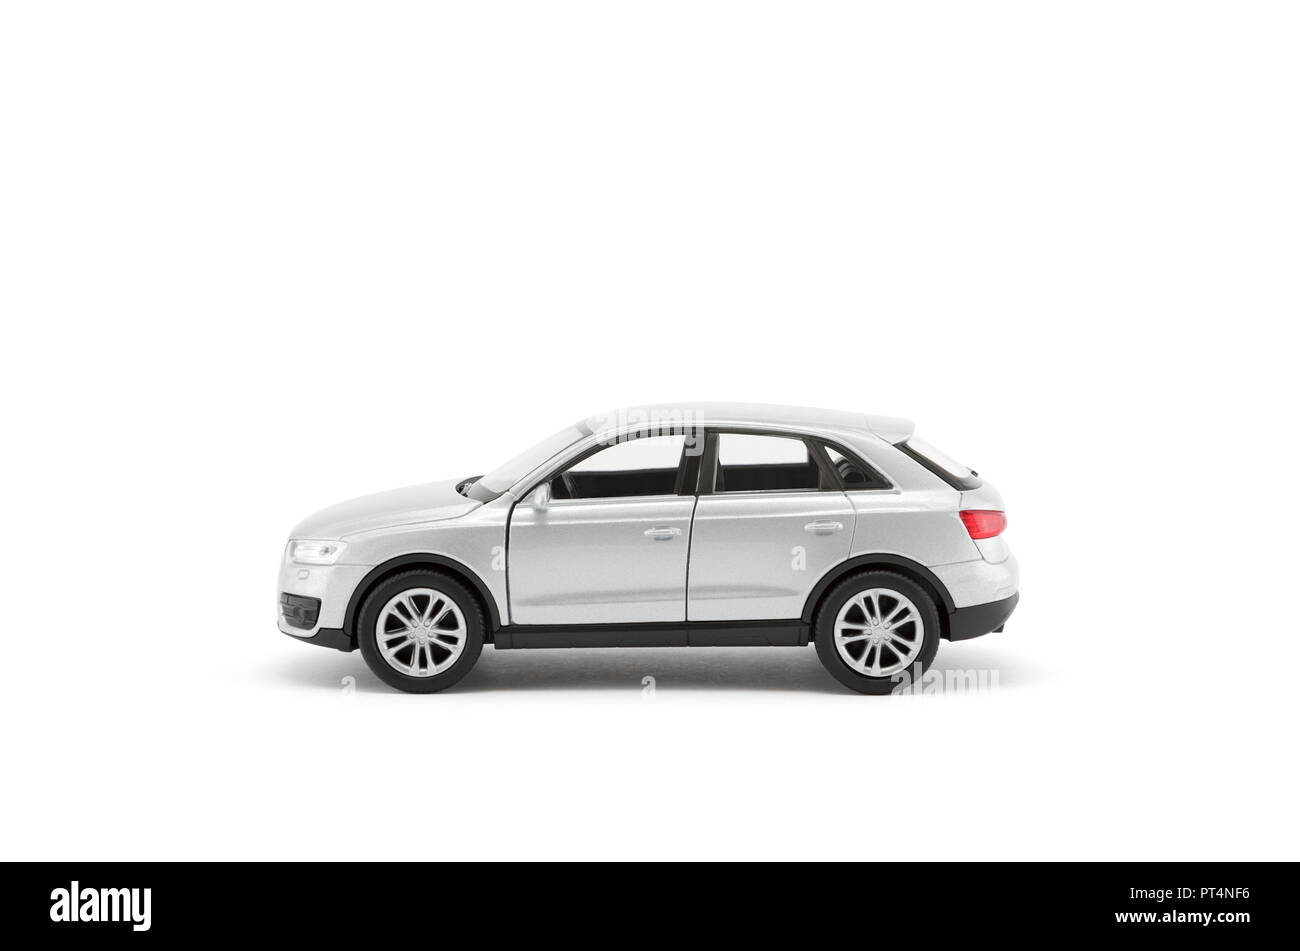 Silver toy car with clipping path on white background - Stock Image